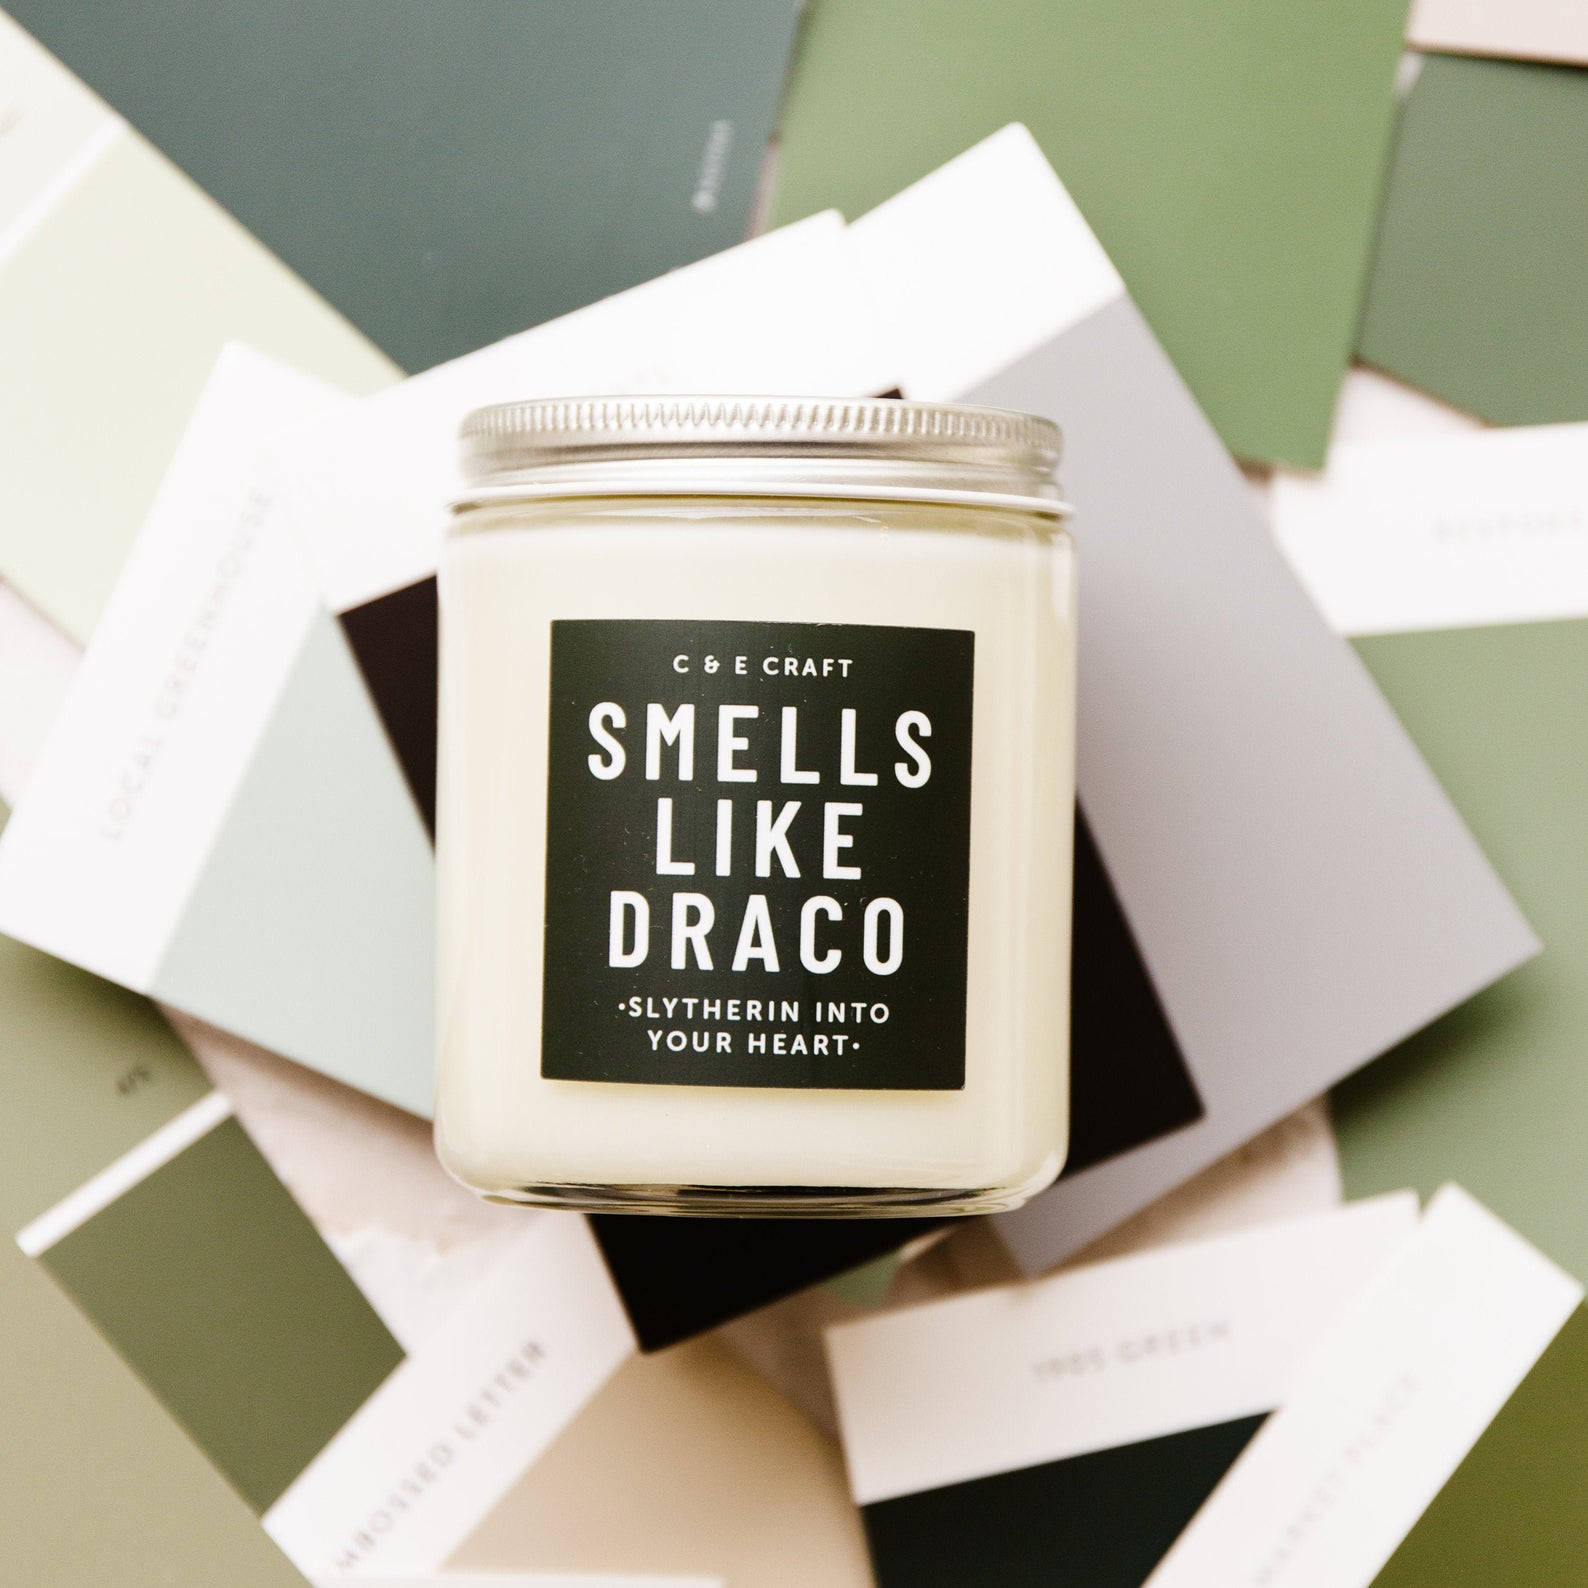 [Image description: a white wax candle in a jar with a label 'Smells like Draco' ] via Etsy